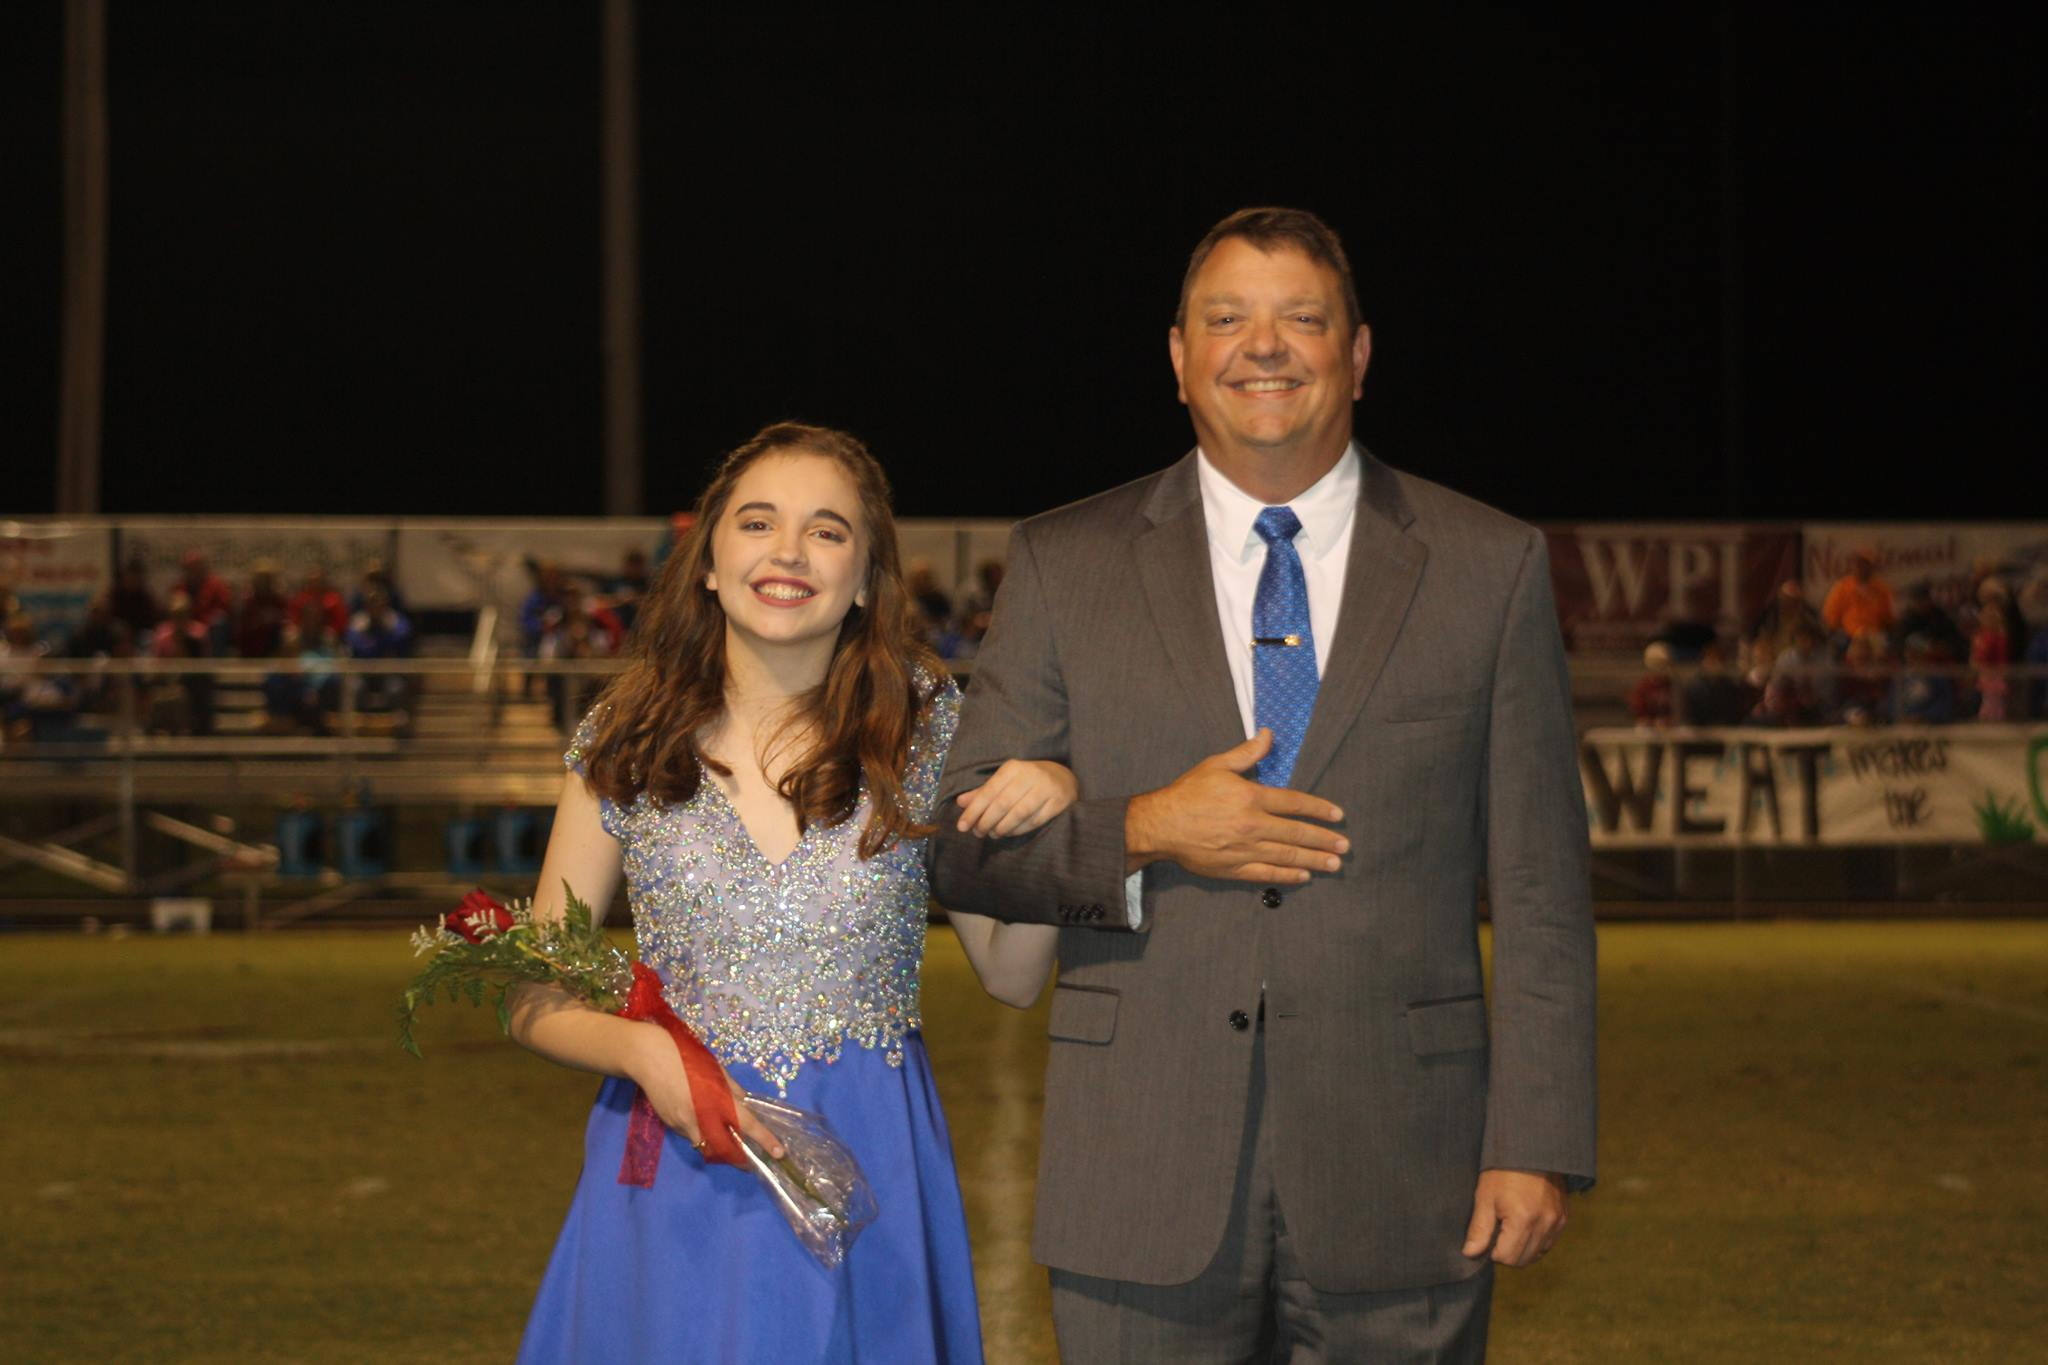 Maggie Storie with her father, Reverend James Storie. Maggie was on the 2016 homecoming court for Shoals Christian school in Florence. Congratulations Maggie!!